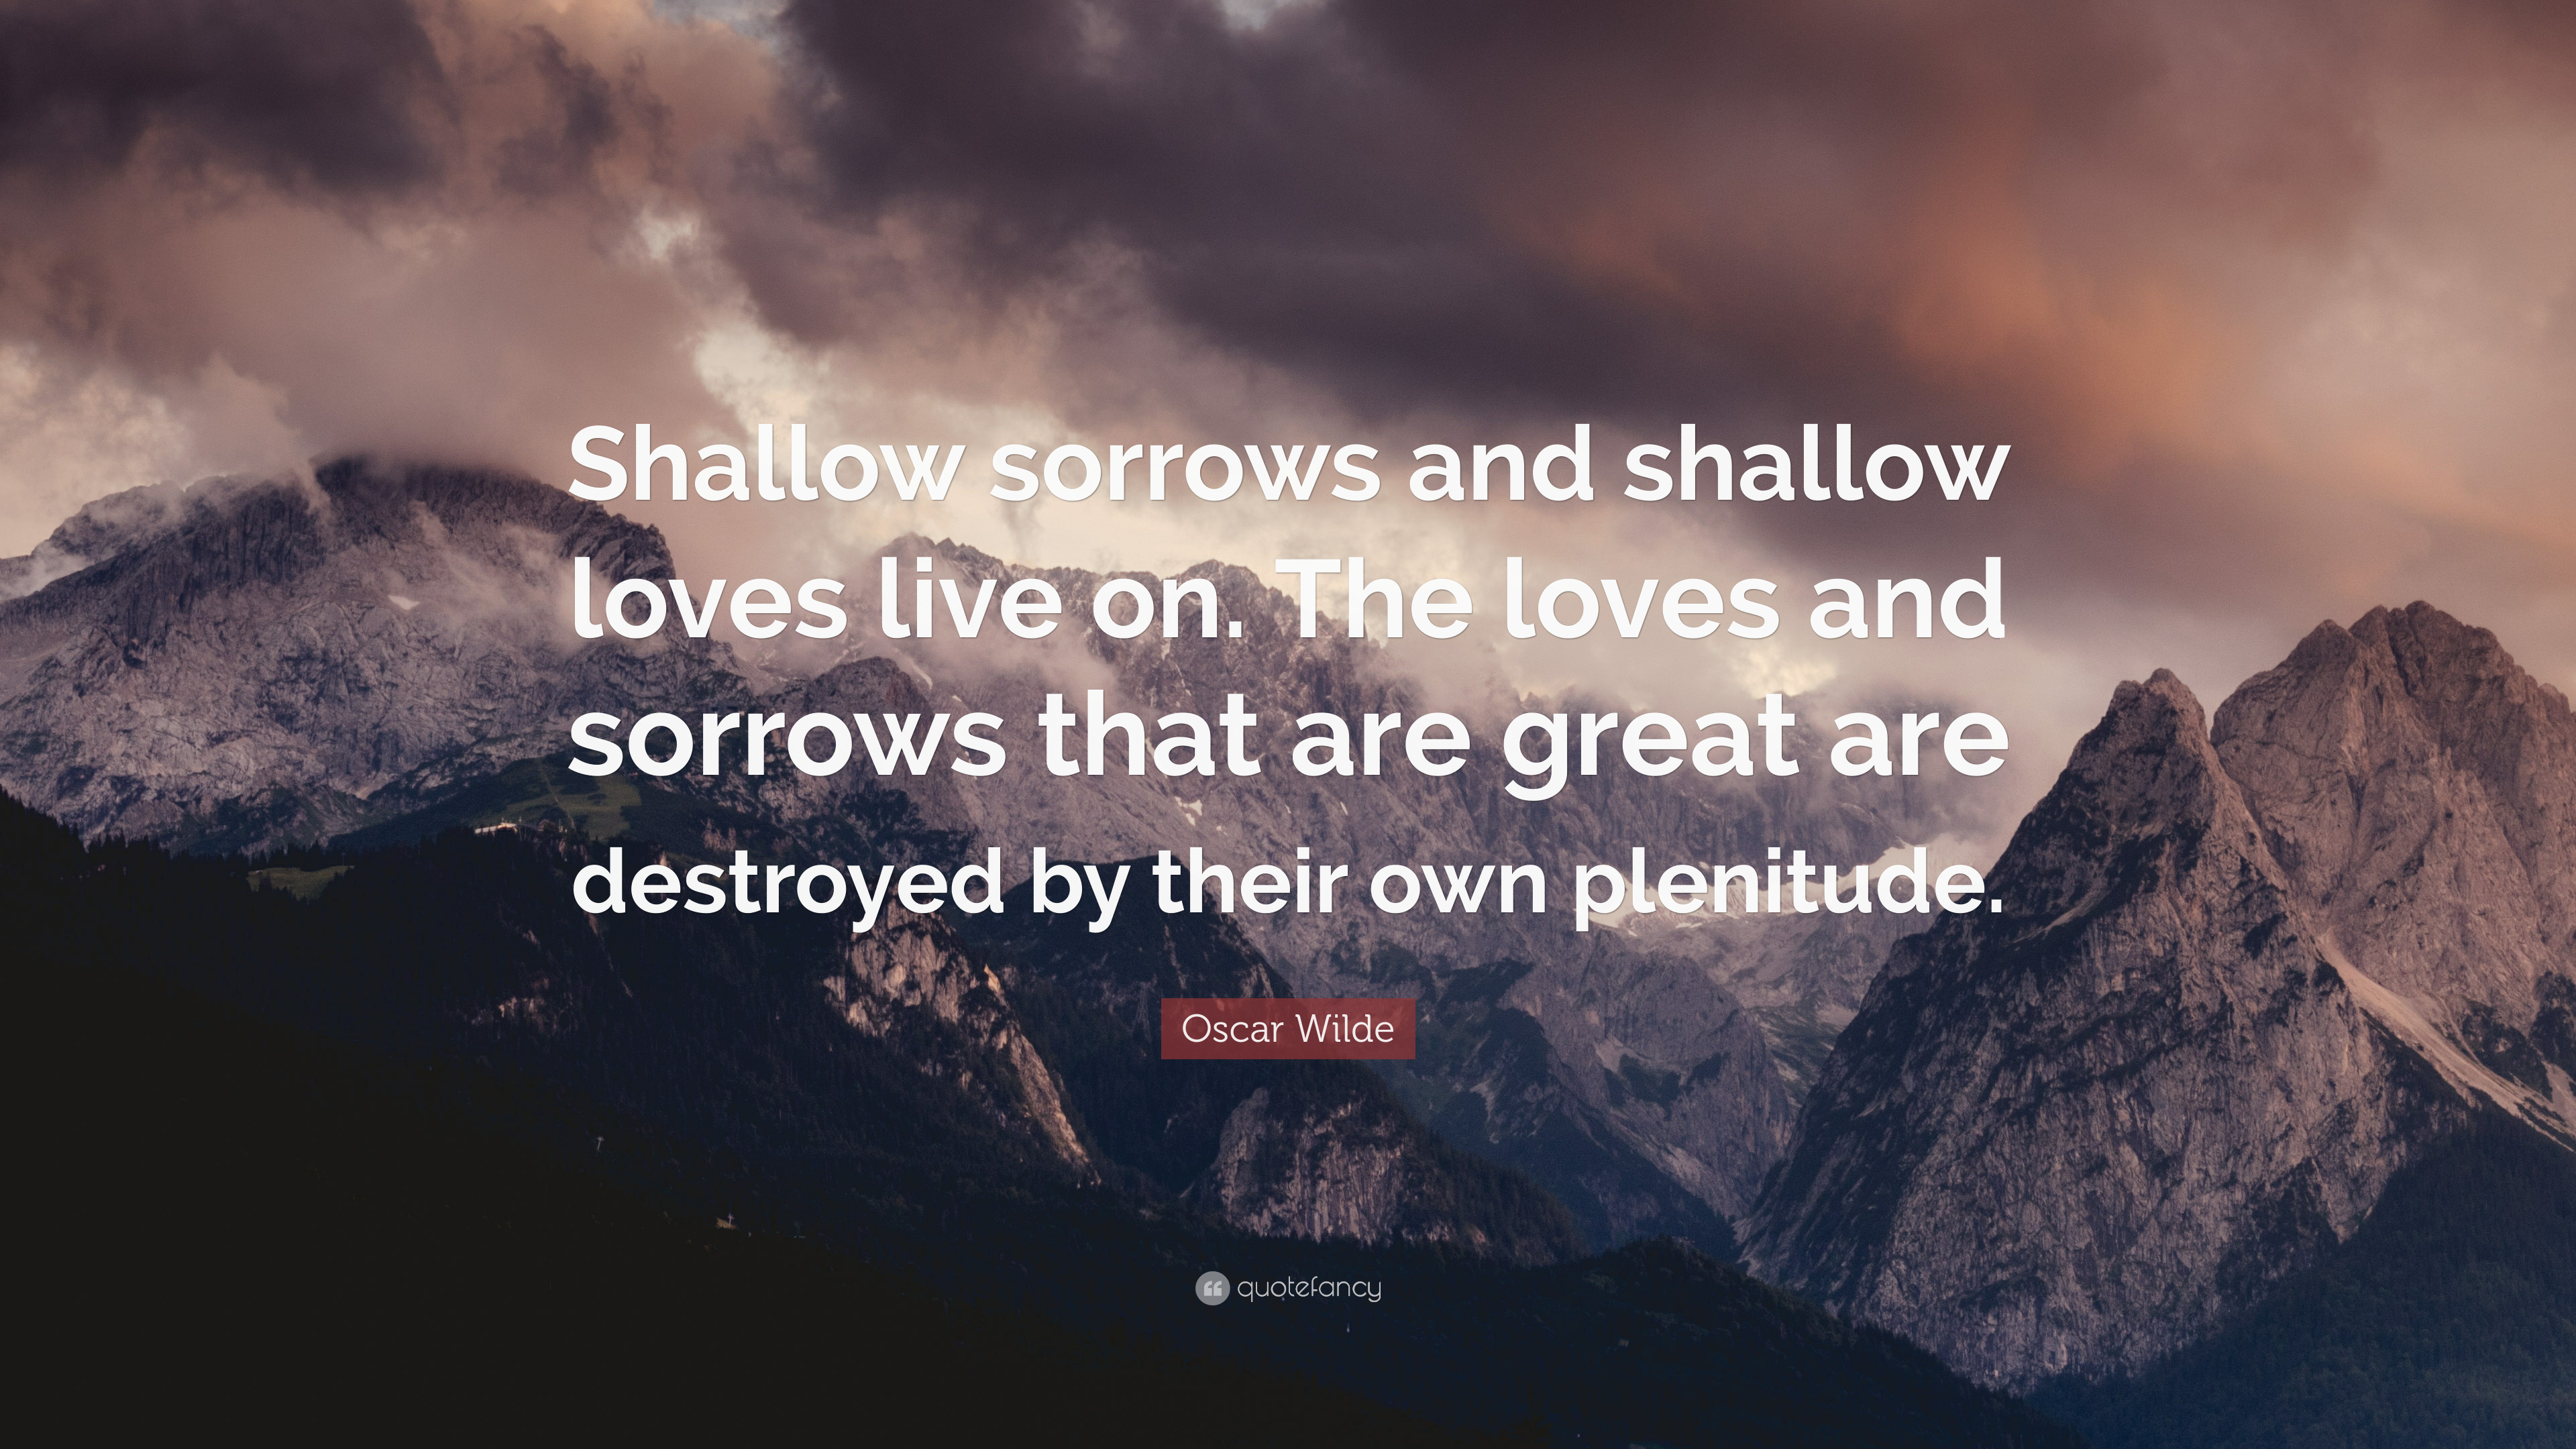 oscar wilde quote   u201cshallow sorrows and shallow loves live